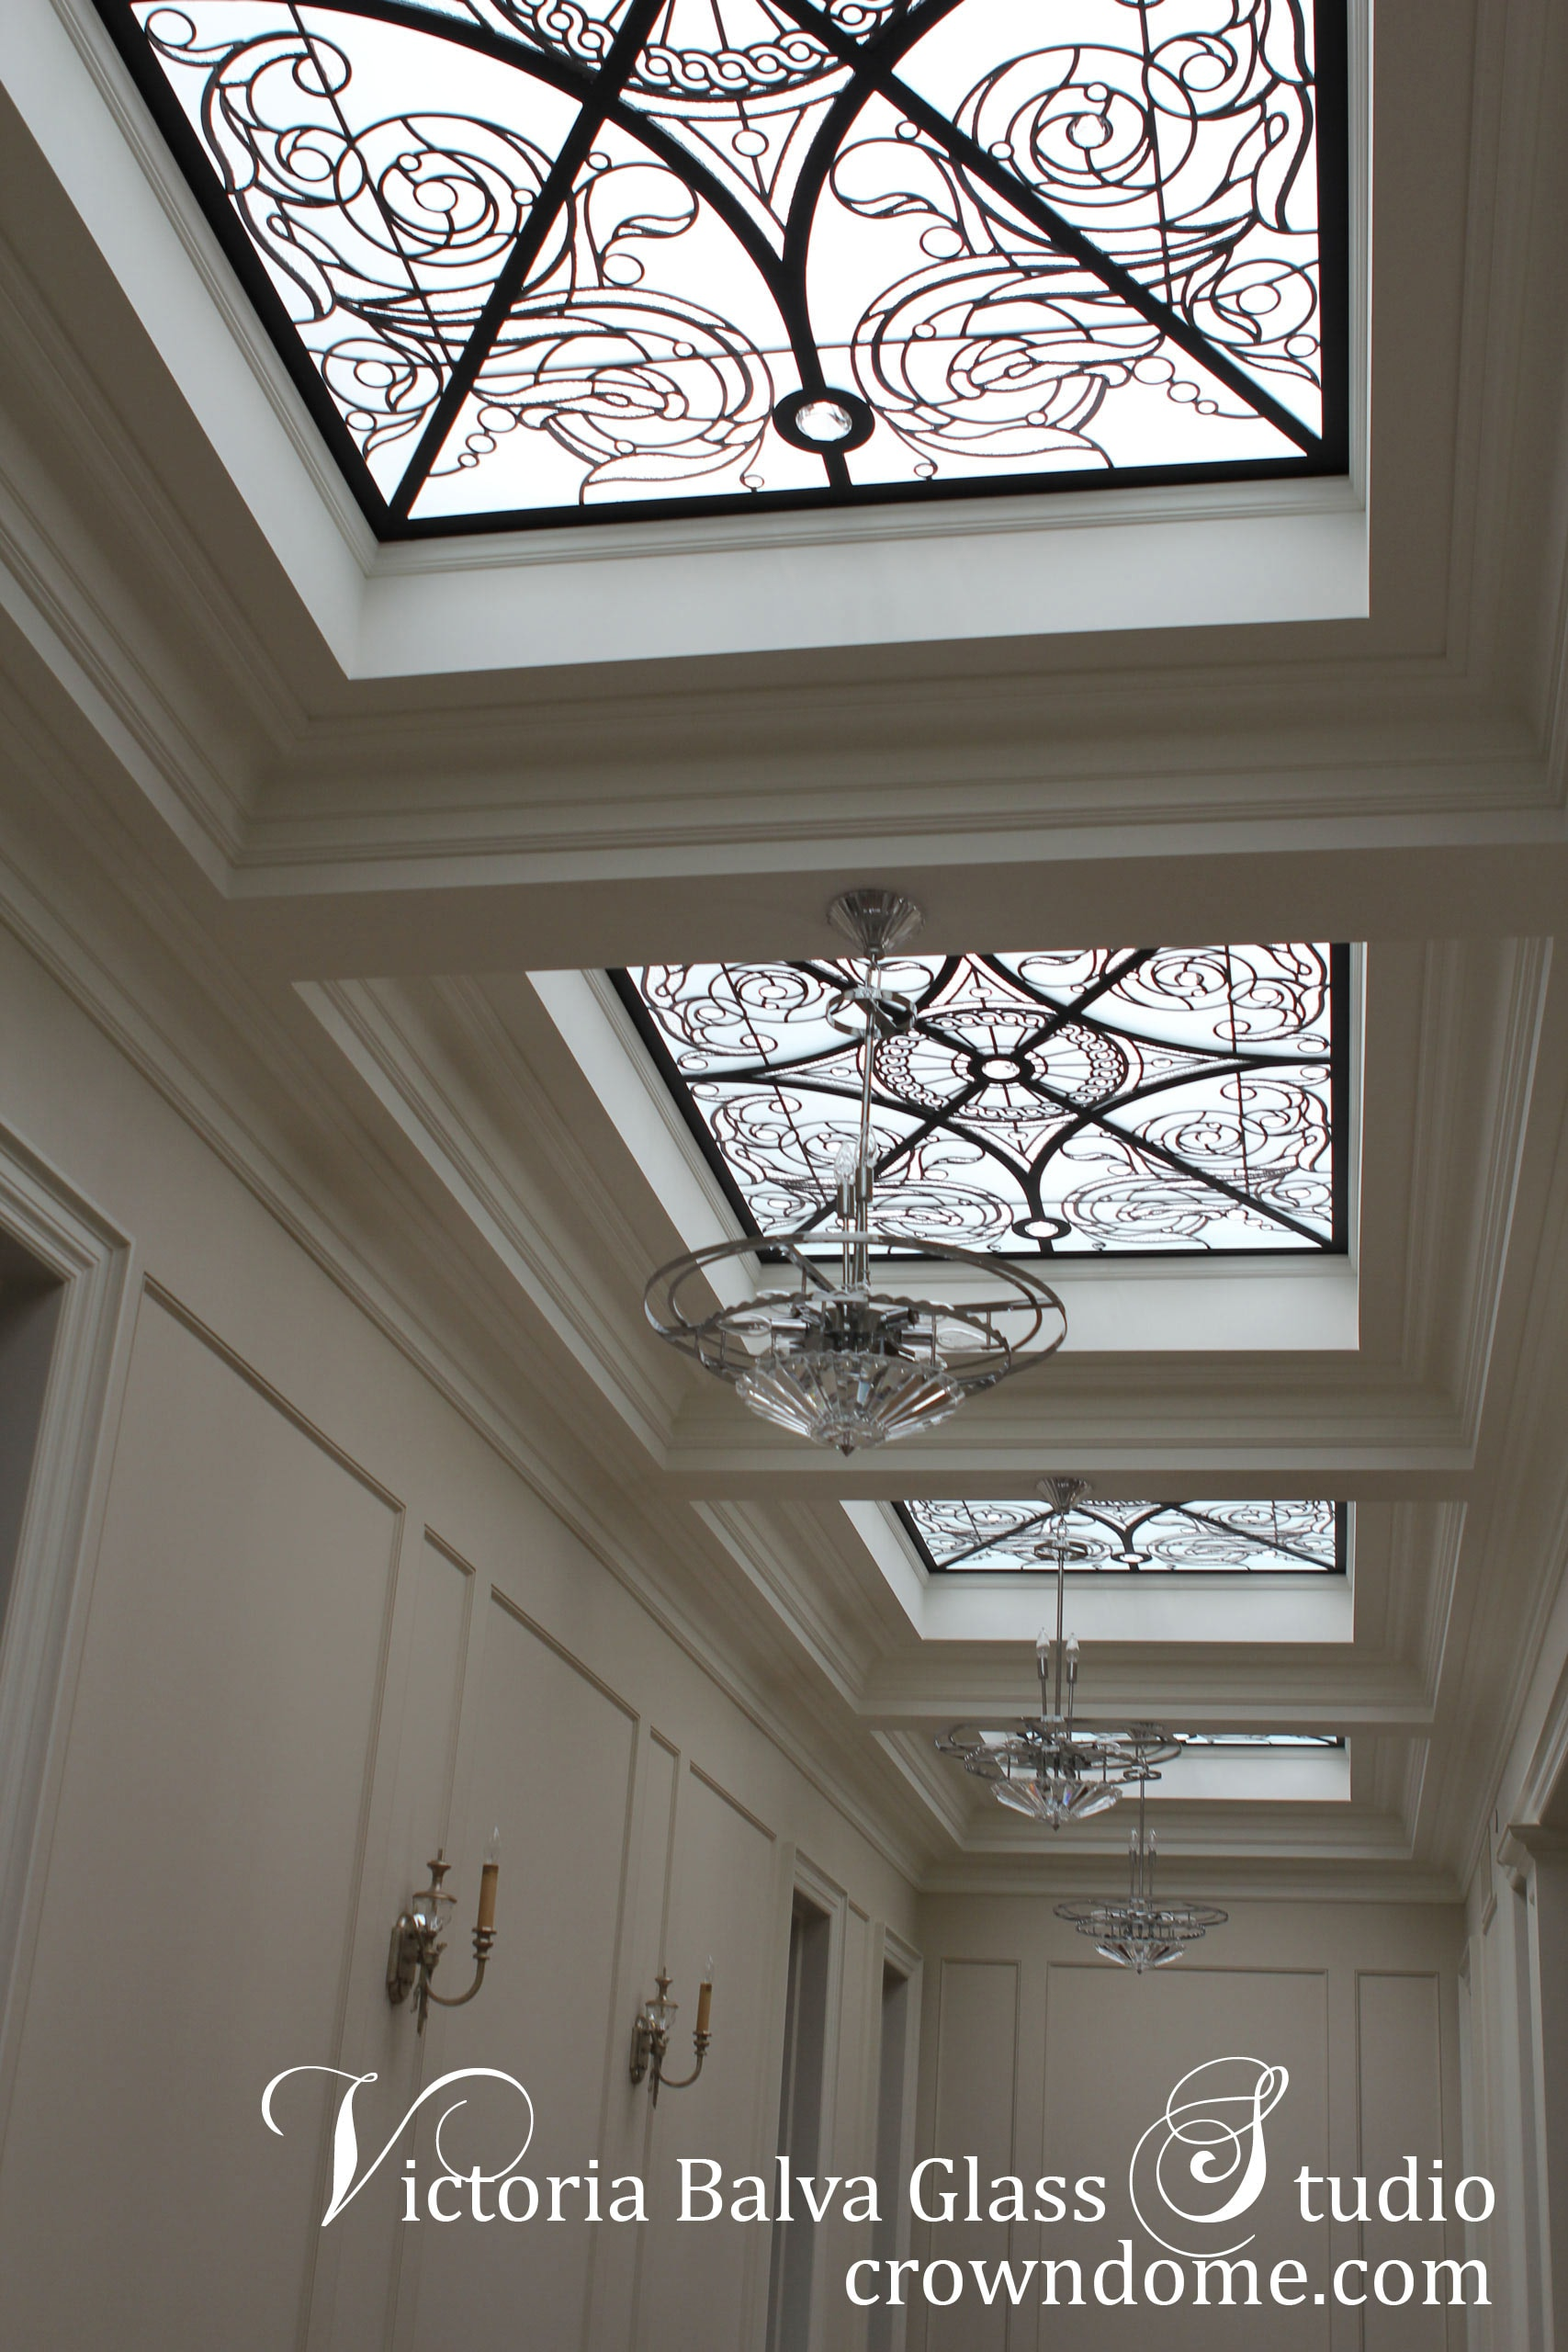 Decorative glass skylight ceiling Germana in classic style with large crystal jewels for a hallway of a luxury built private residence. Clear textured glass, beveled glass, clear crystal jewels. Original design by glass artist Victoria Balva